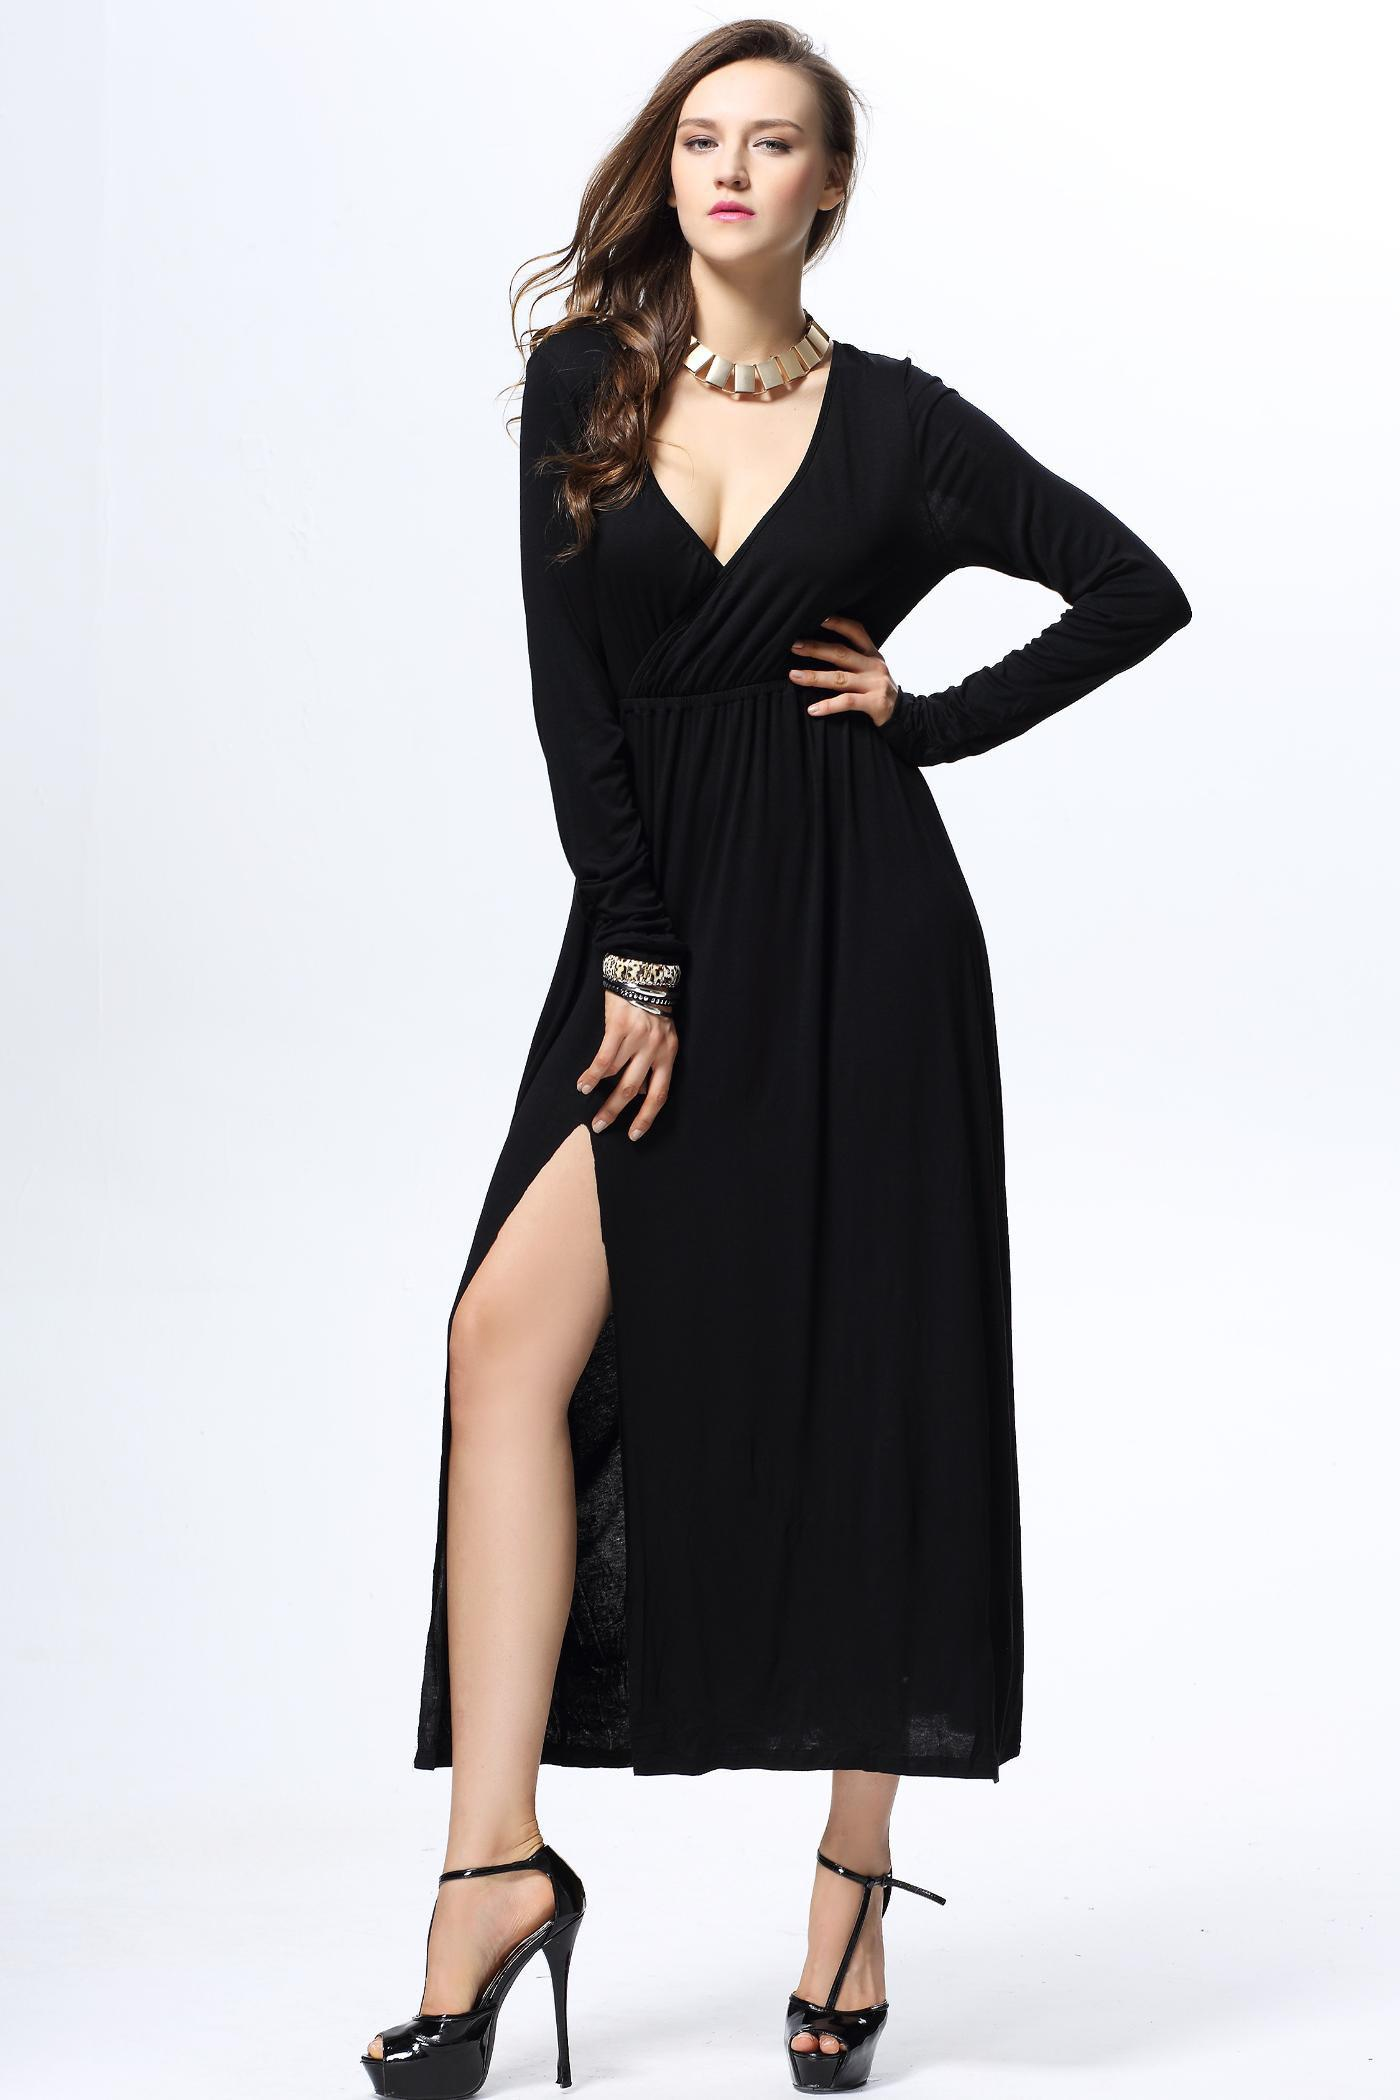 Women's Charming Furcal Embellished Long Sleeves Plunging Neck Black Dress - BLACK L